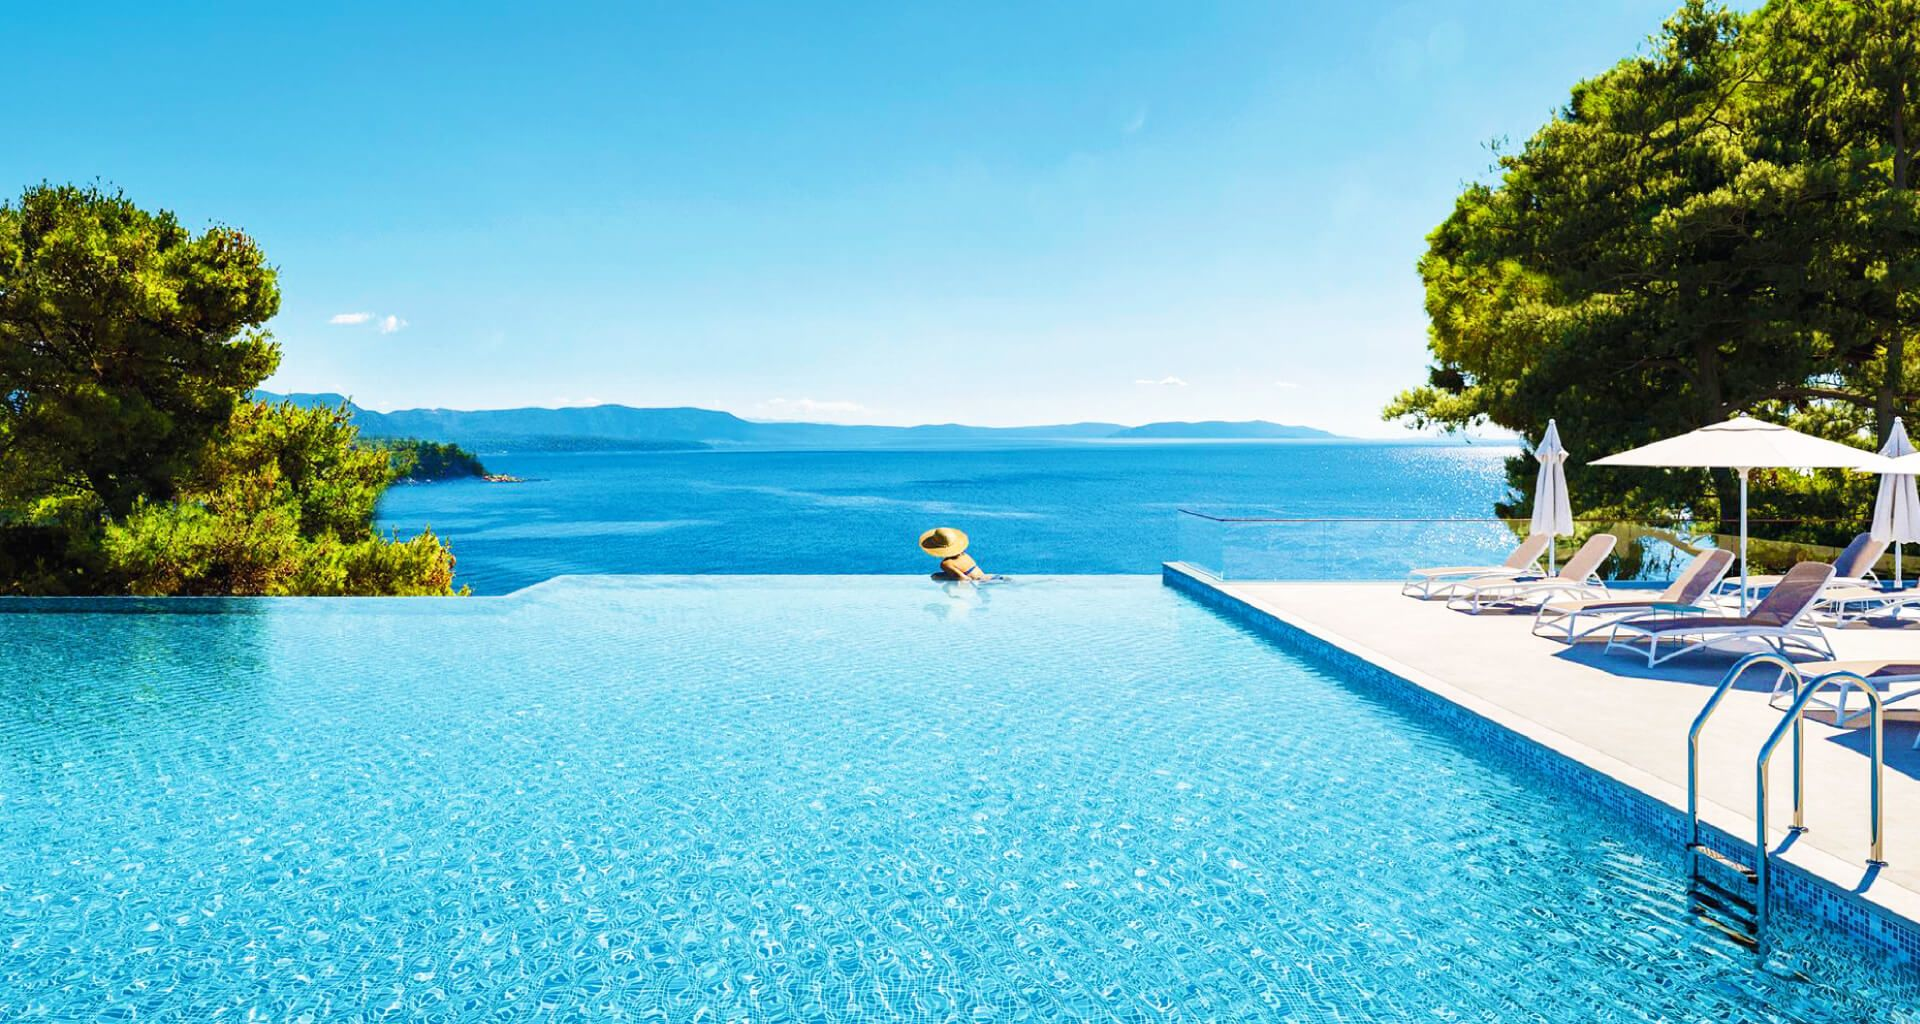 A guide to the best hotels in Kvarner Bay